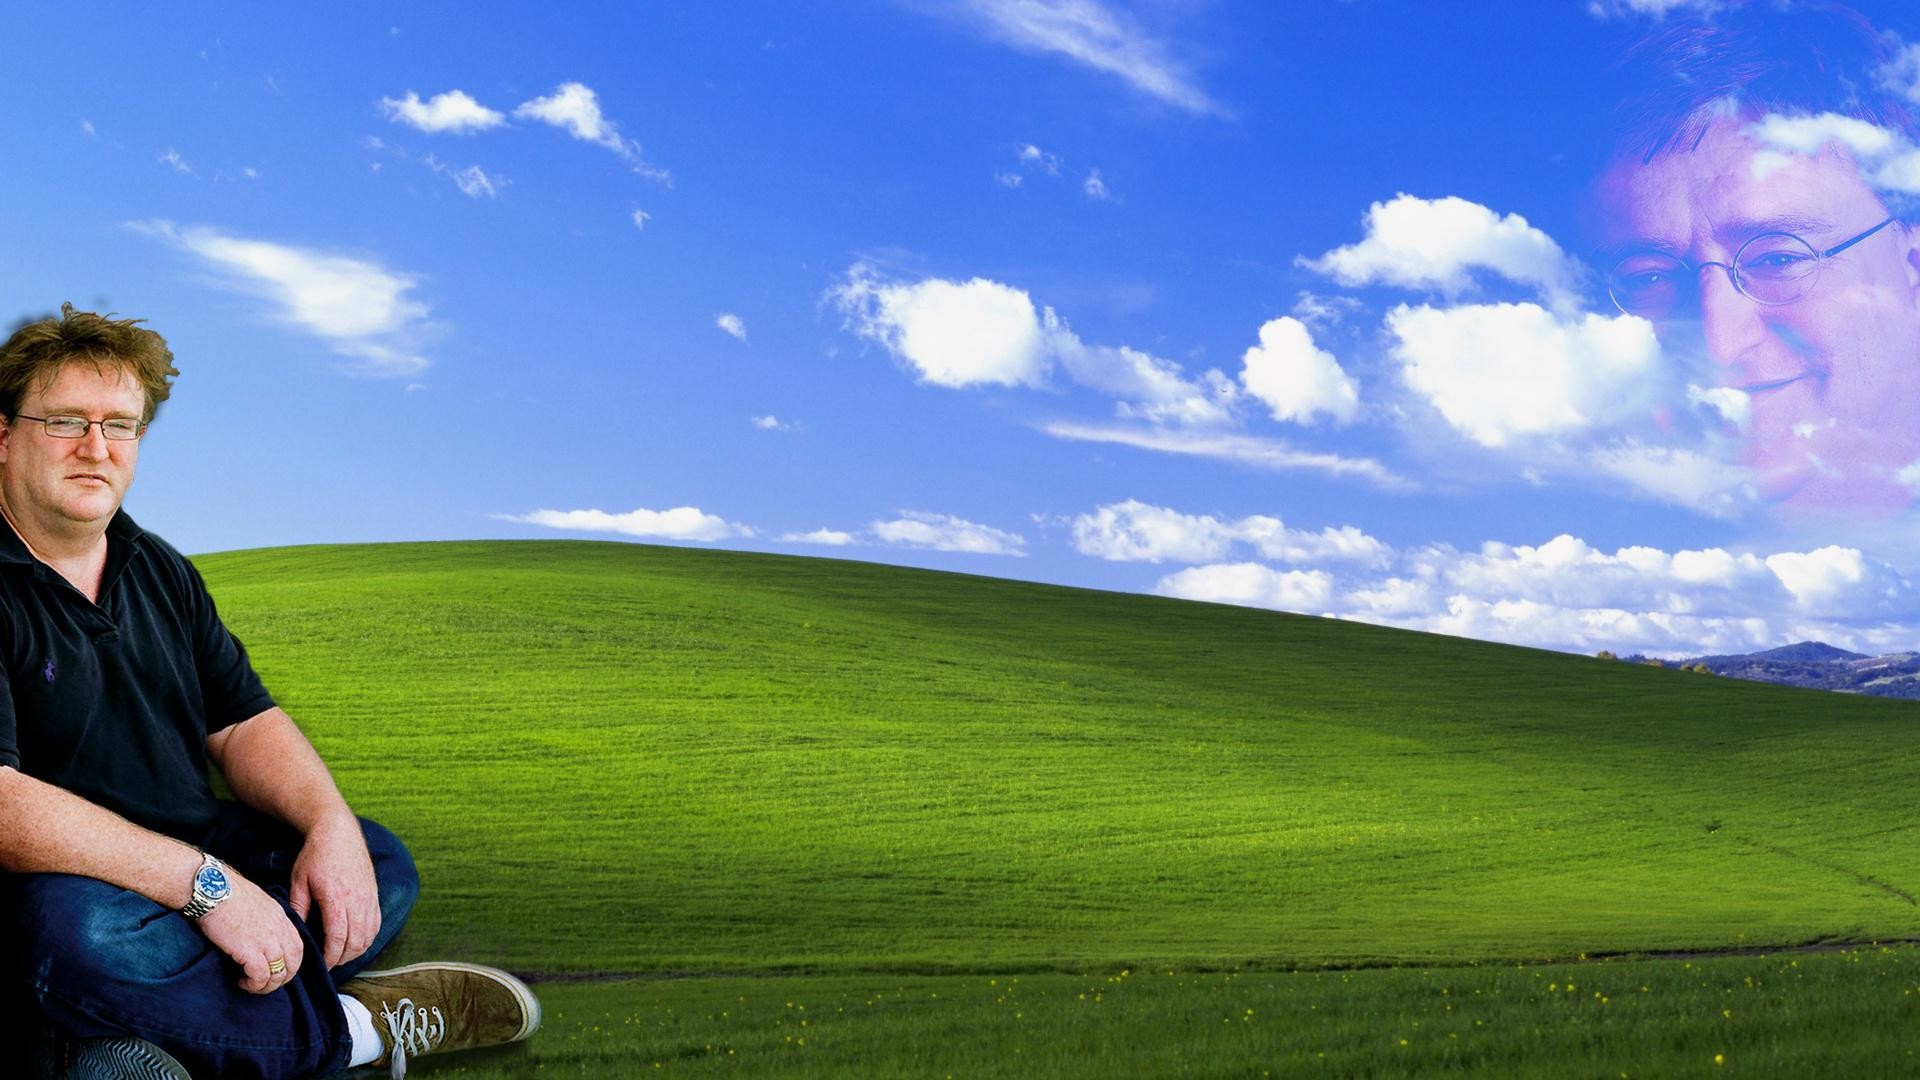 1920x1080 The lord shall protect Windows XP users after the MS heathens have  abandoned their herd [OC] ...